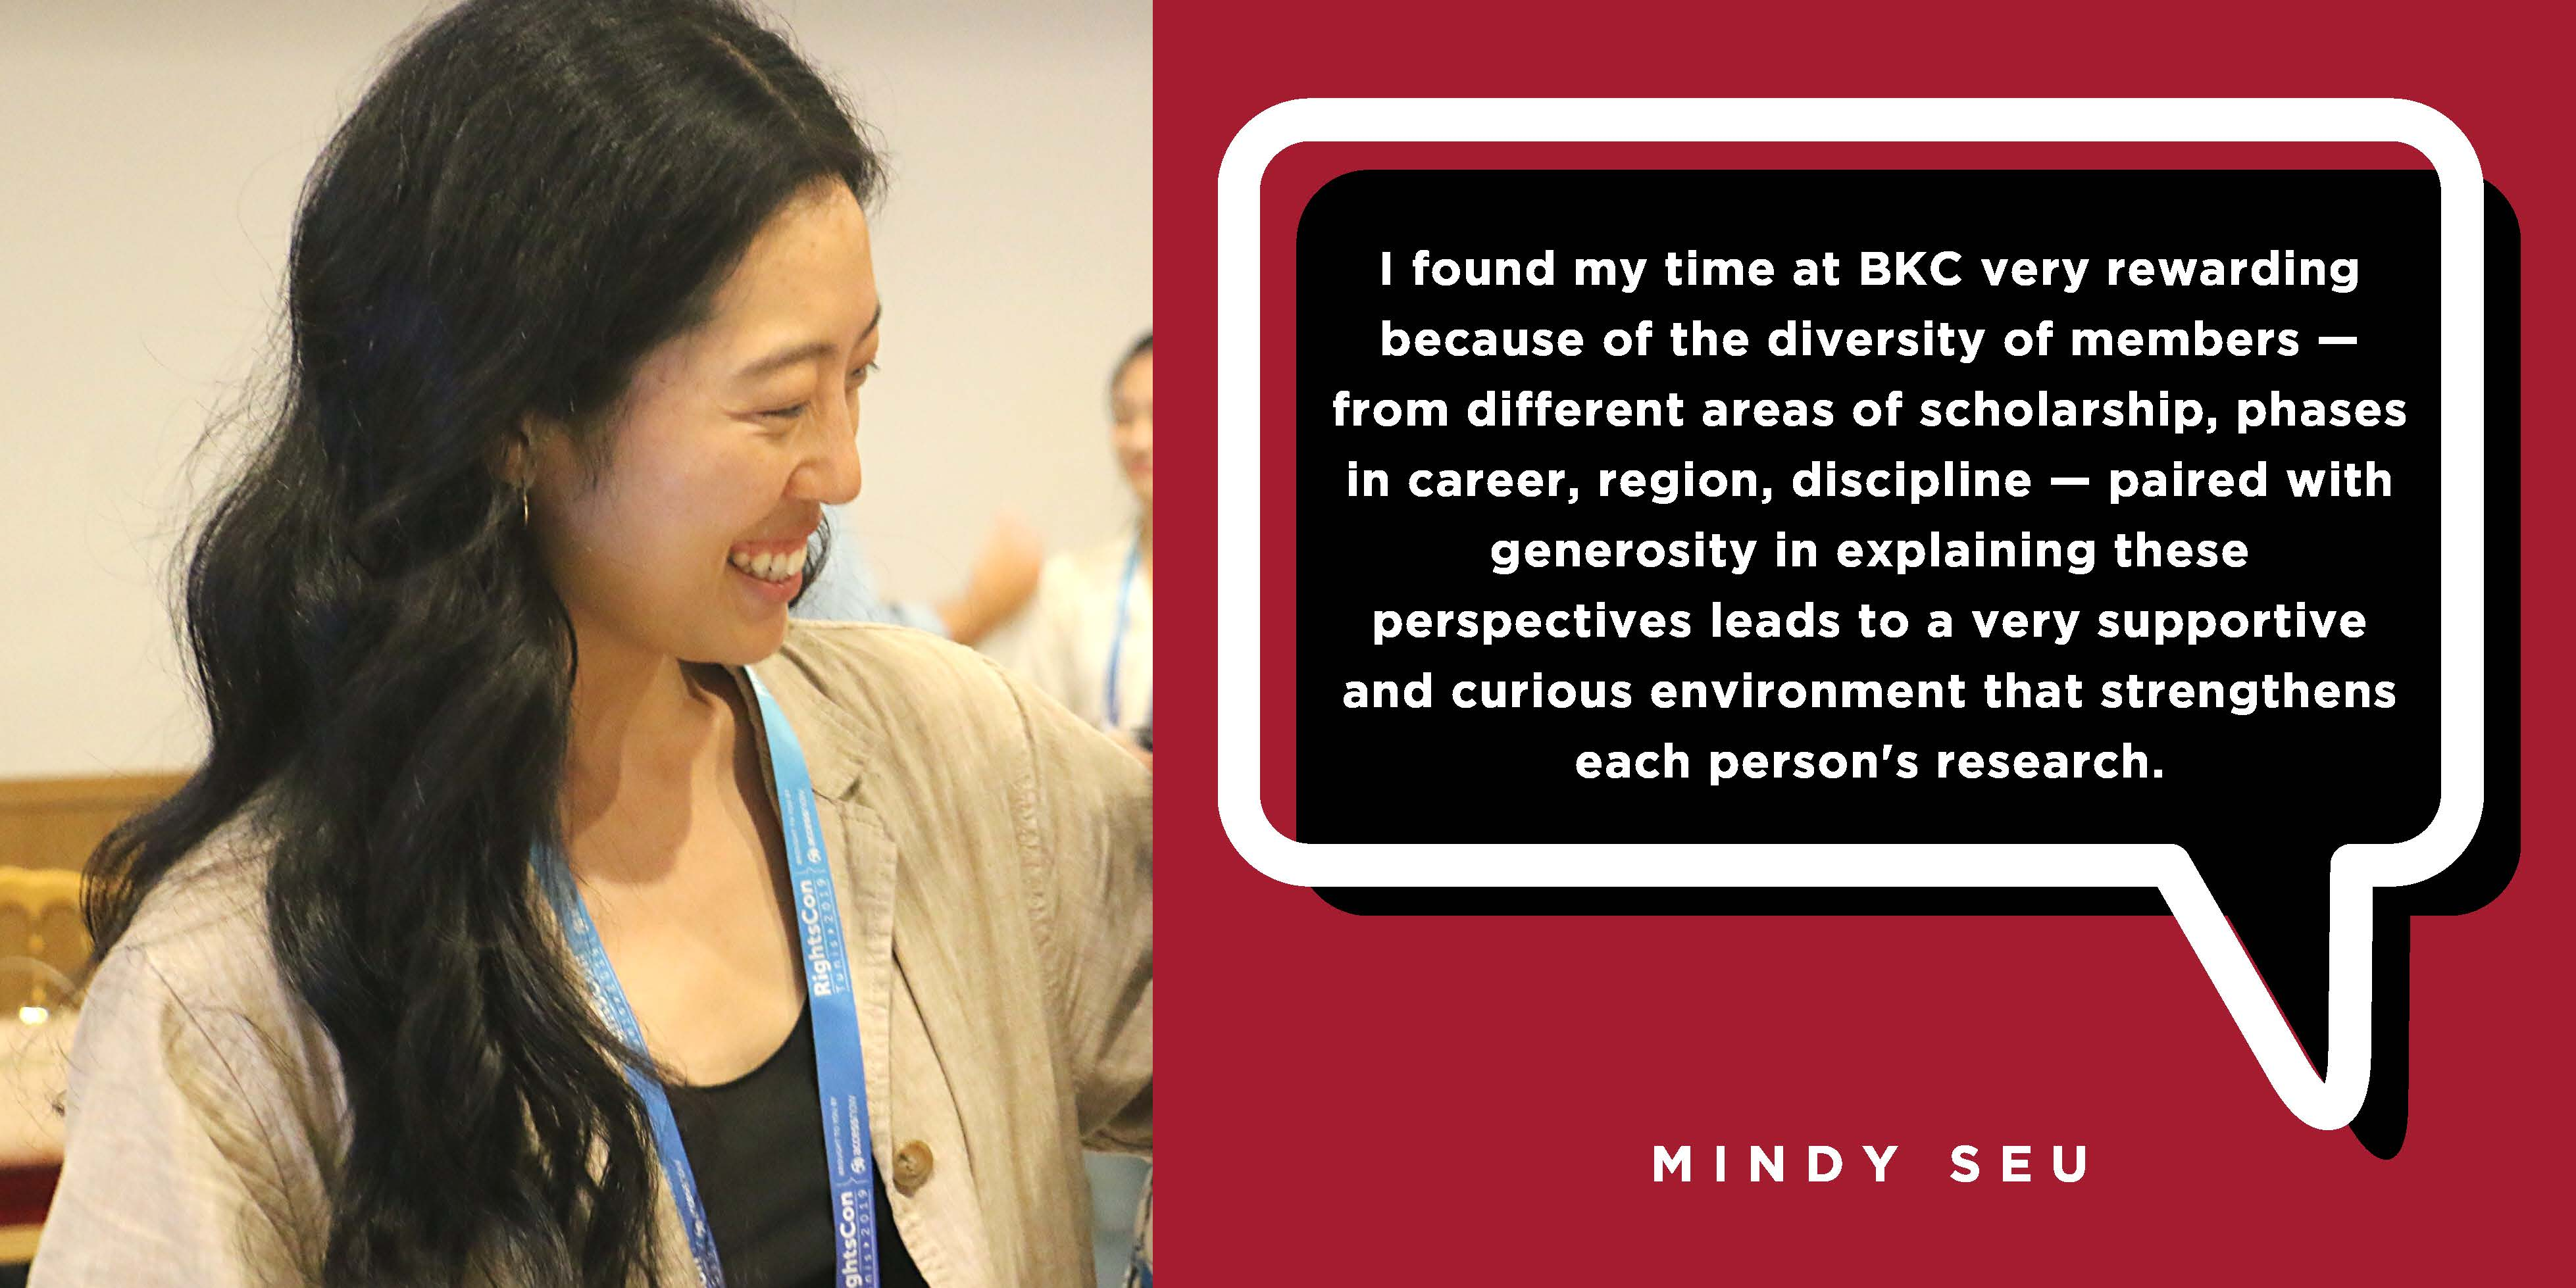 I found my time at BKC very rewarding because of the diversity of members — from different areas of scholarship, phases in career, region, discipline — paired with generosity in explaining these perspectives leads to a very supportive and curious environment that strengthens each person's research. - Mindy Seu